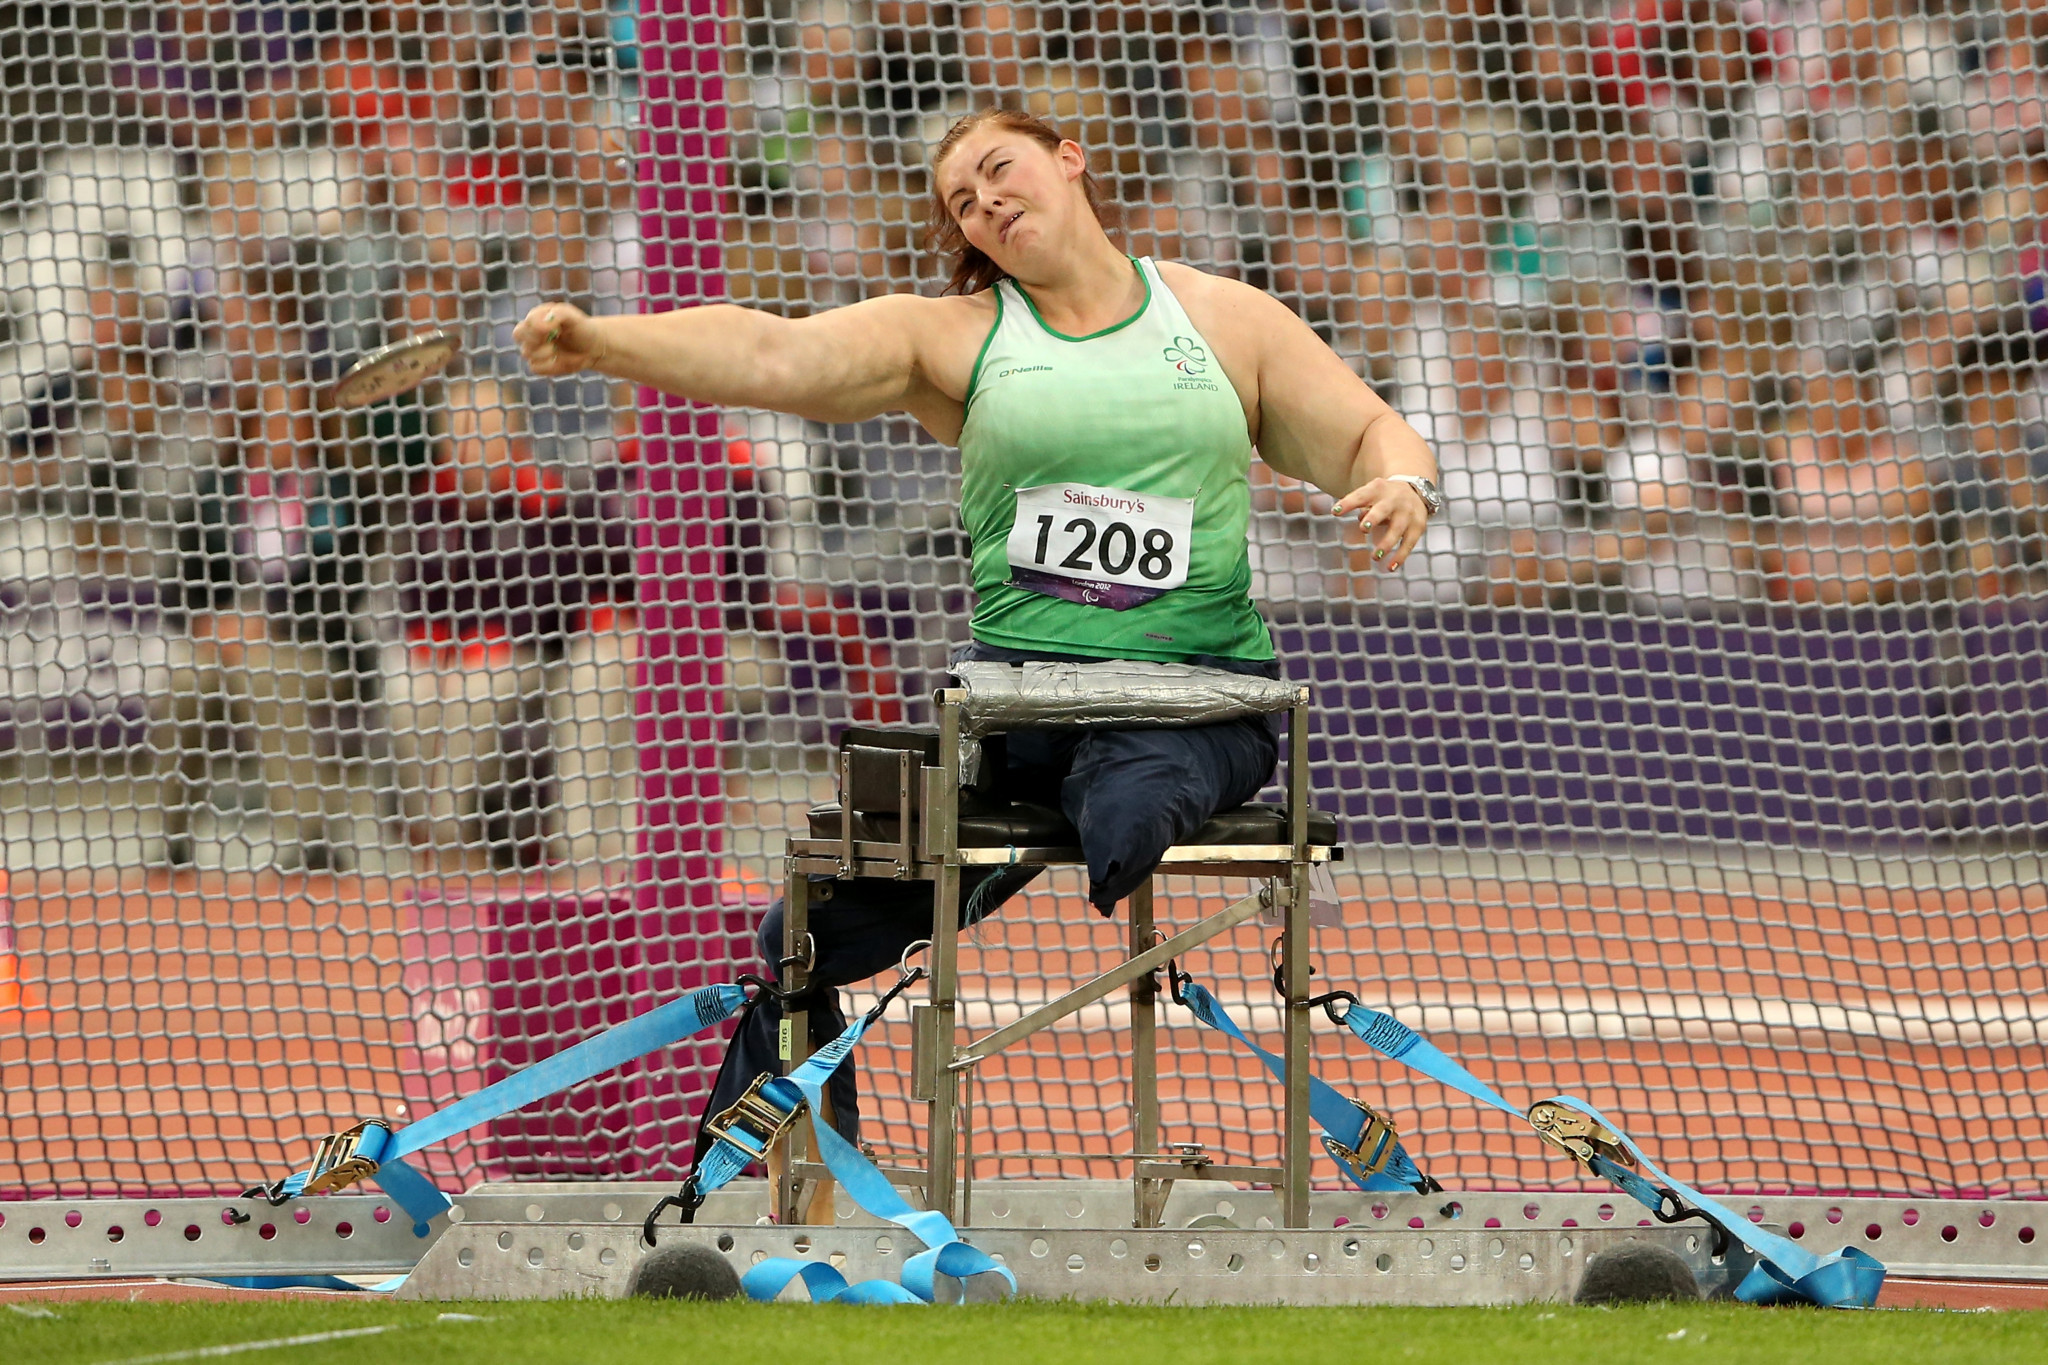 Orla Barry won two Paralympic medals in her career ©Getty Images